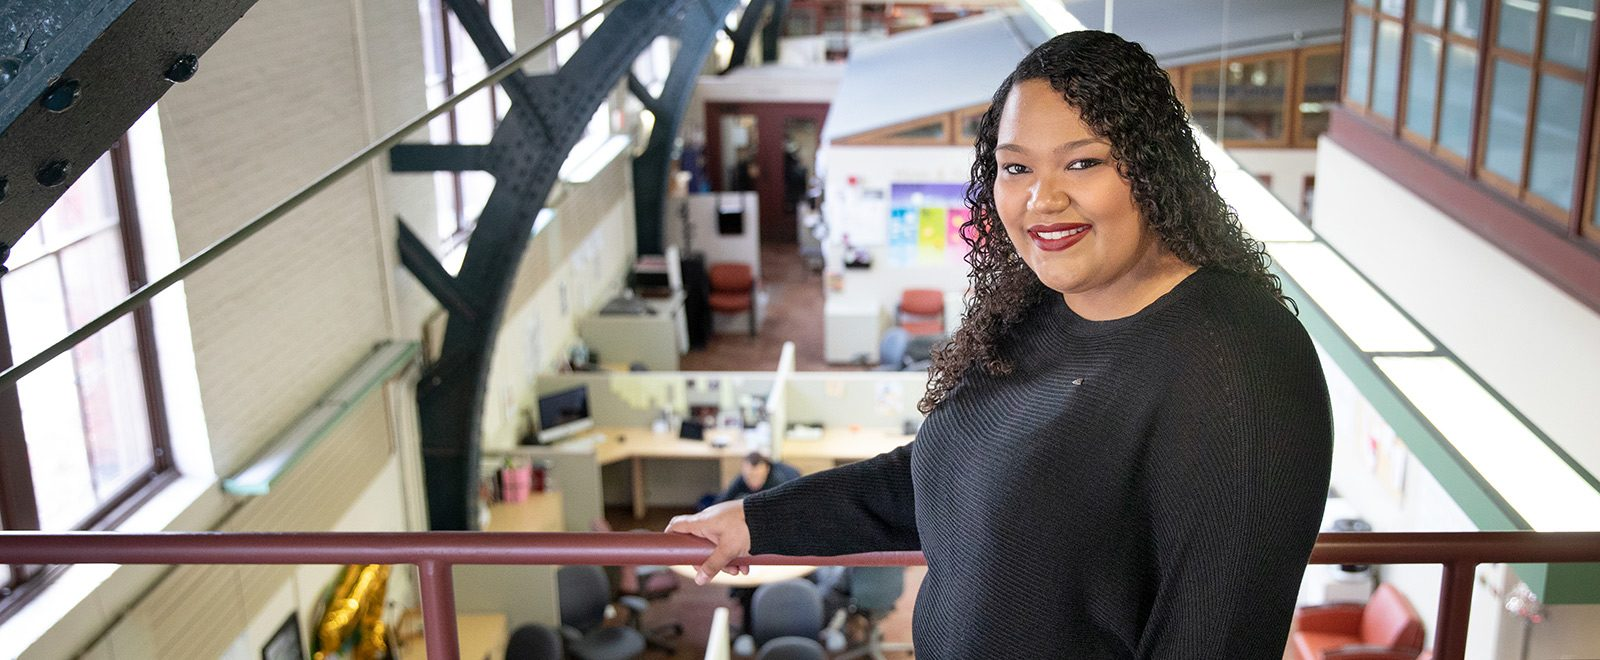 Abagail Catani poses for a portrait in UW–Madison's Red Gym and Multicultural Student Center.